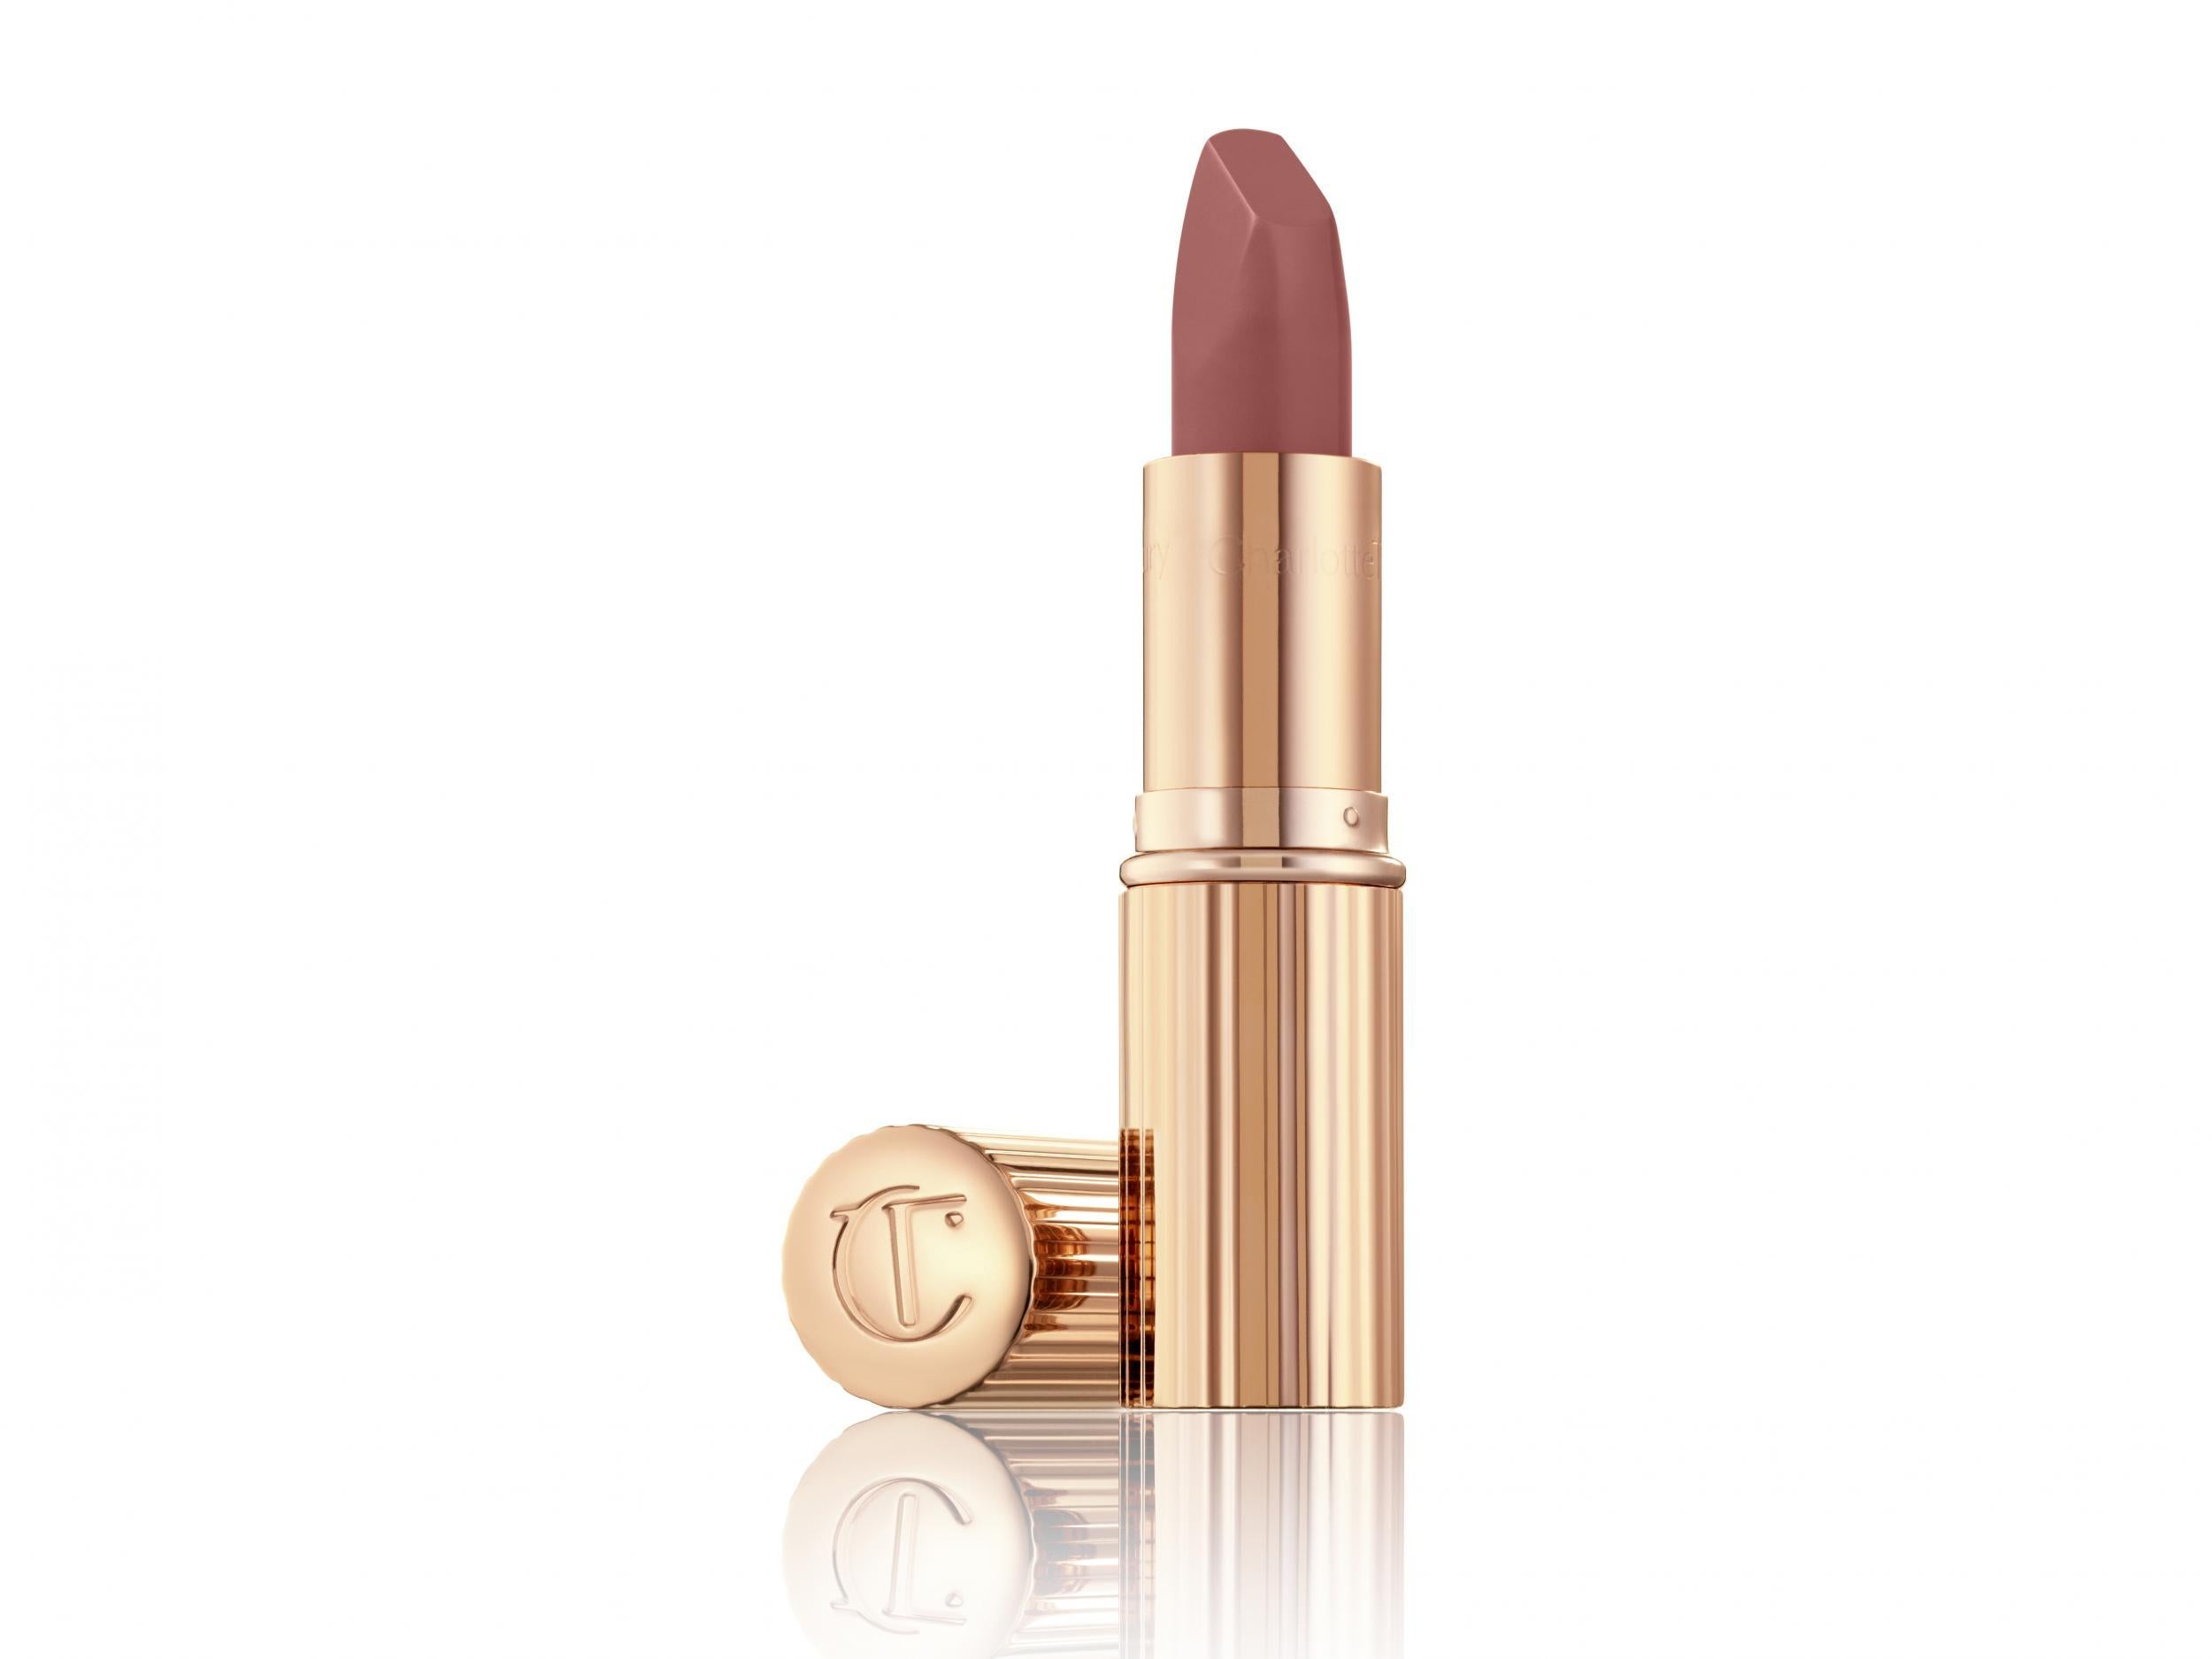 Best nude lipsticks for Asian skin: Long wearing and